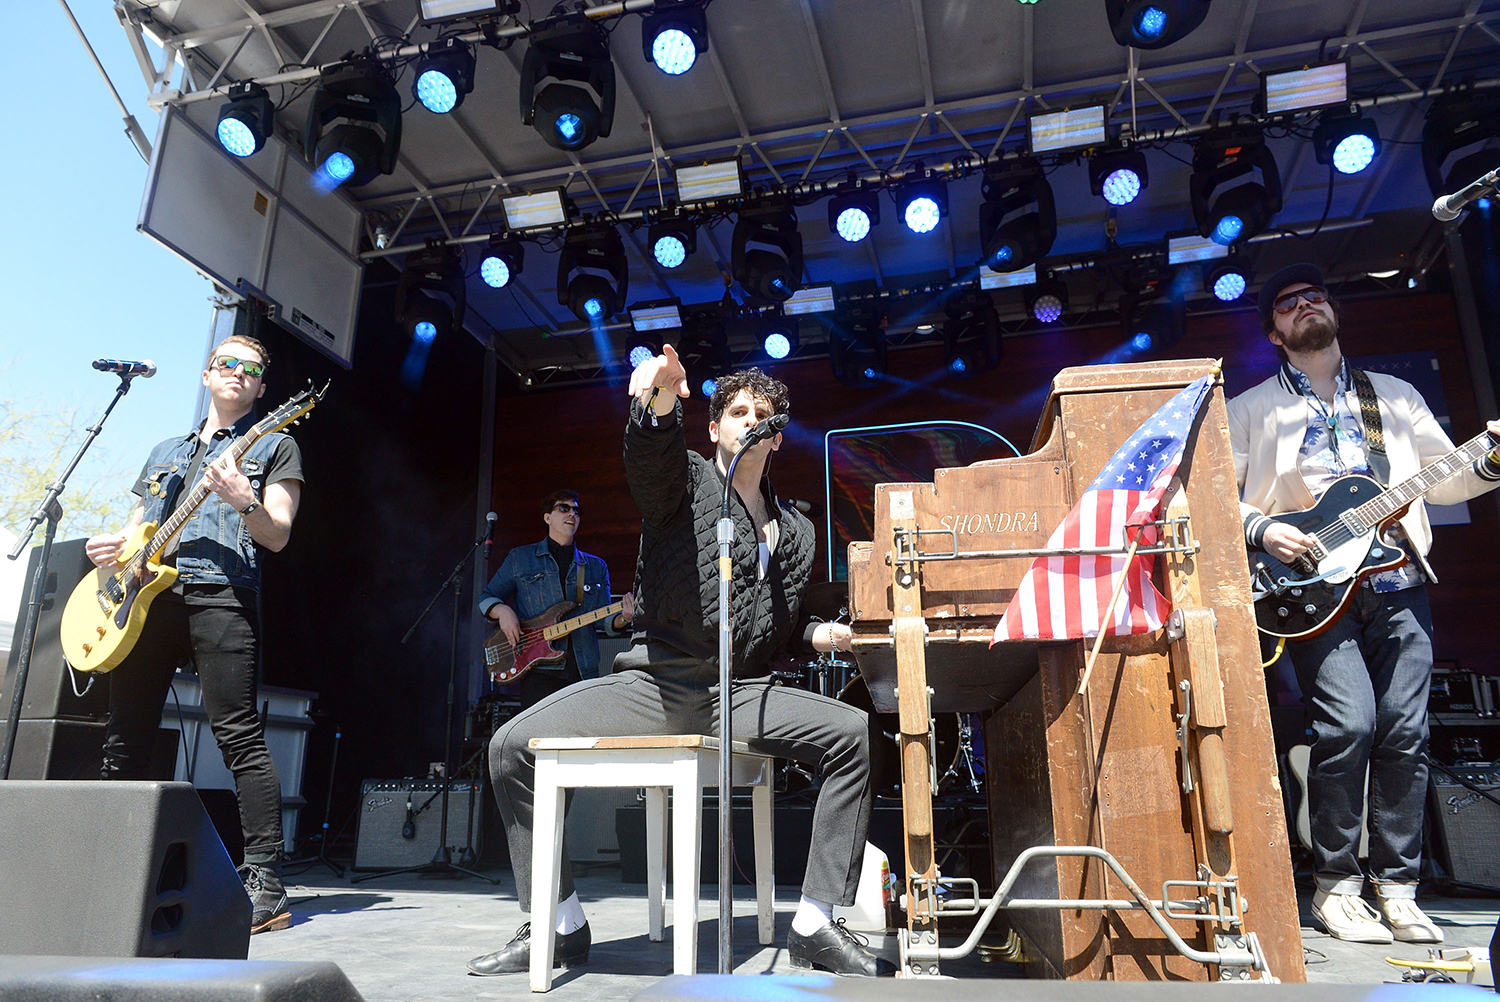 Review: Rock Revivalists Low Cut Connie Face Reality on 'Dirty Pictures'